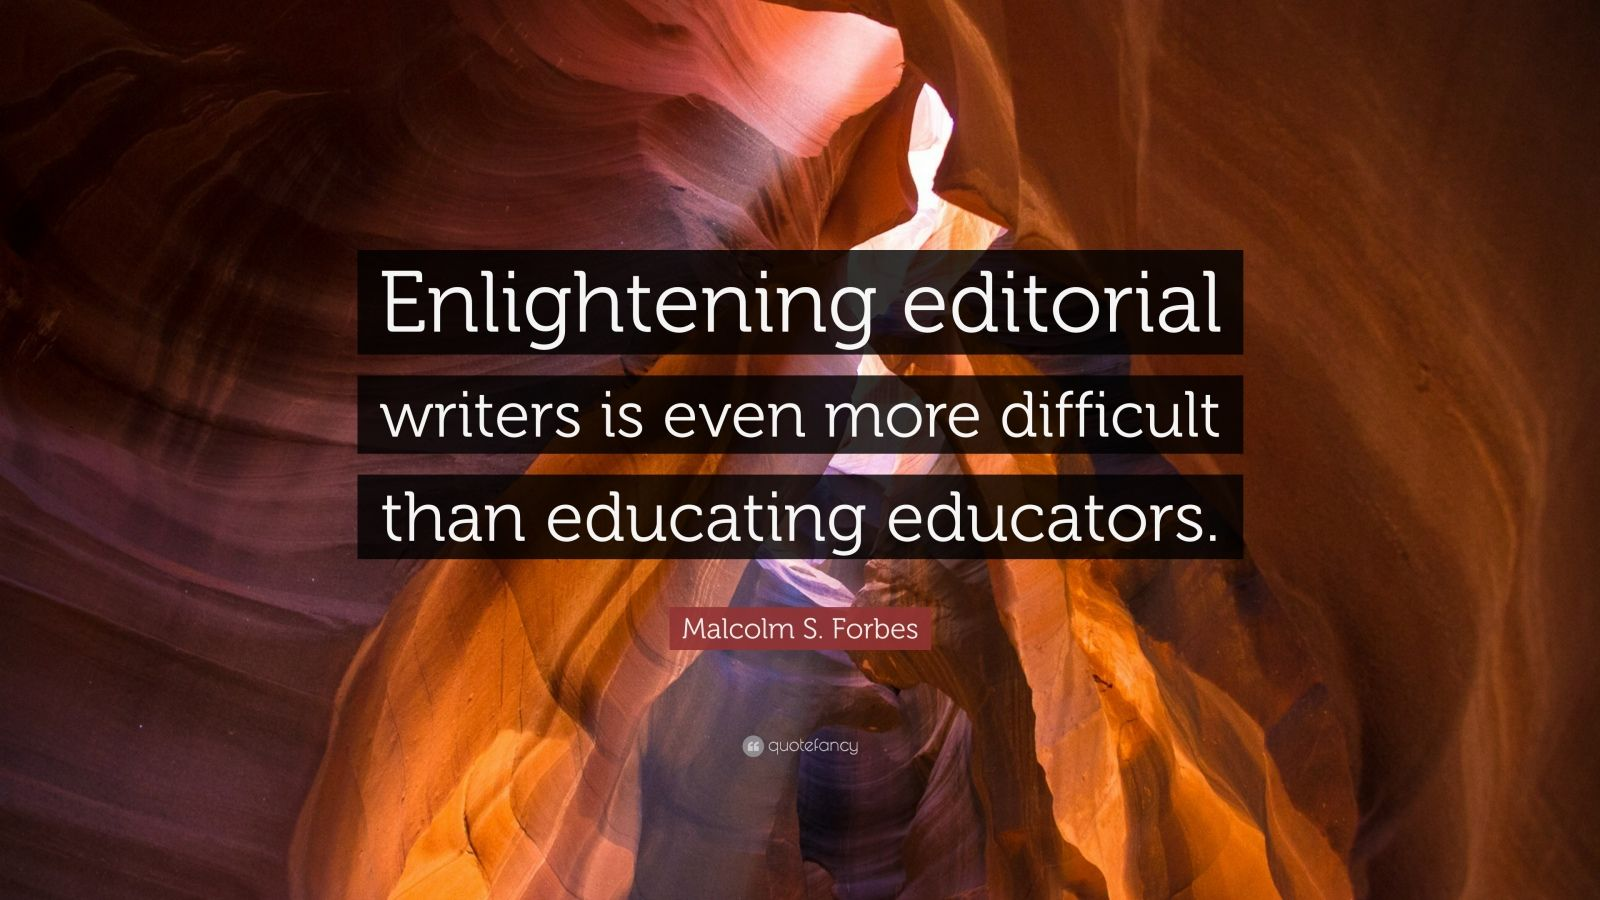 """Malcolm S. Forbes Quote: """"Enlightening editorial writers is even more difficult than educating educators."""""""